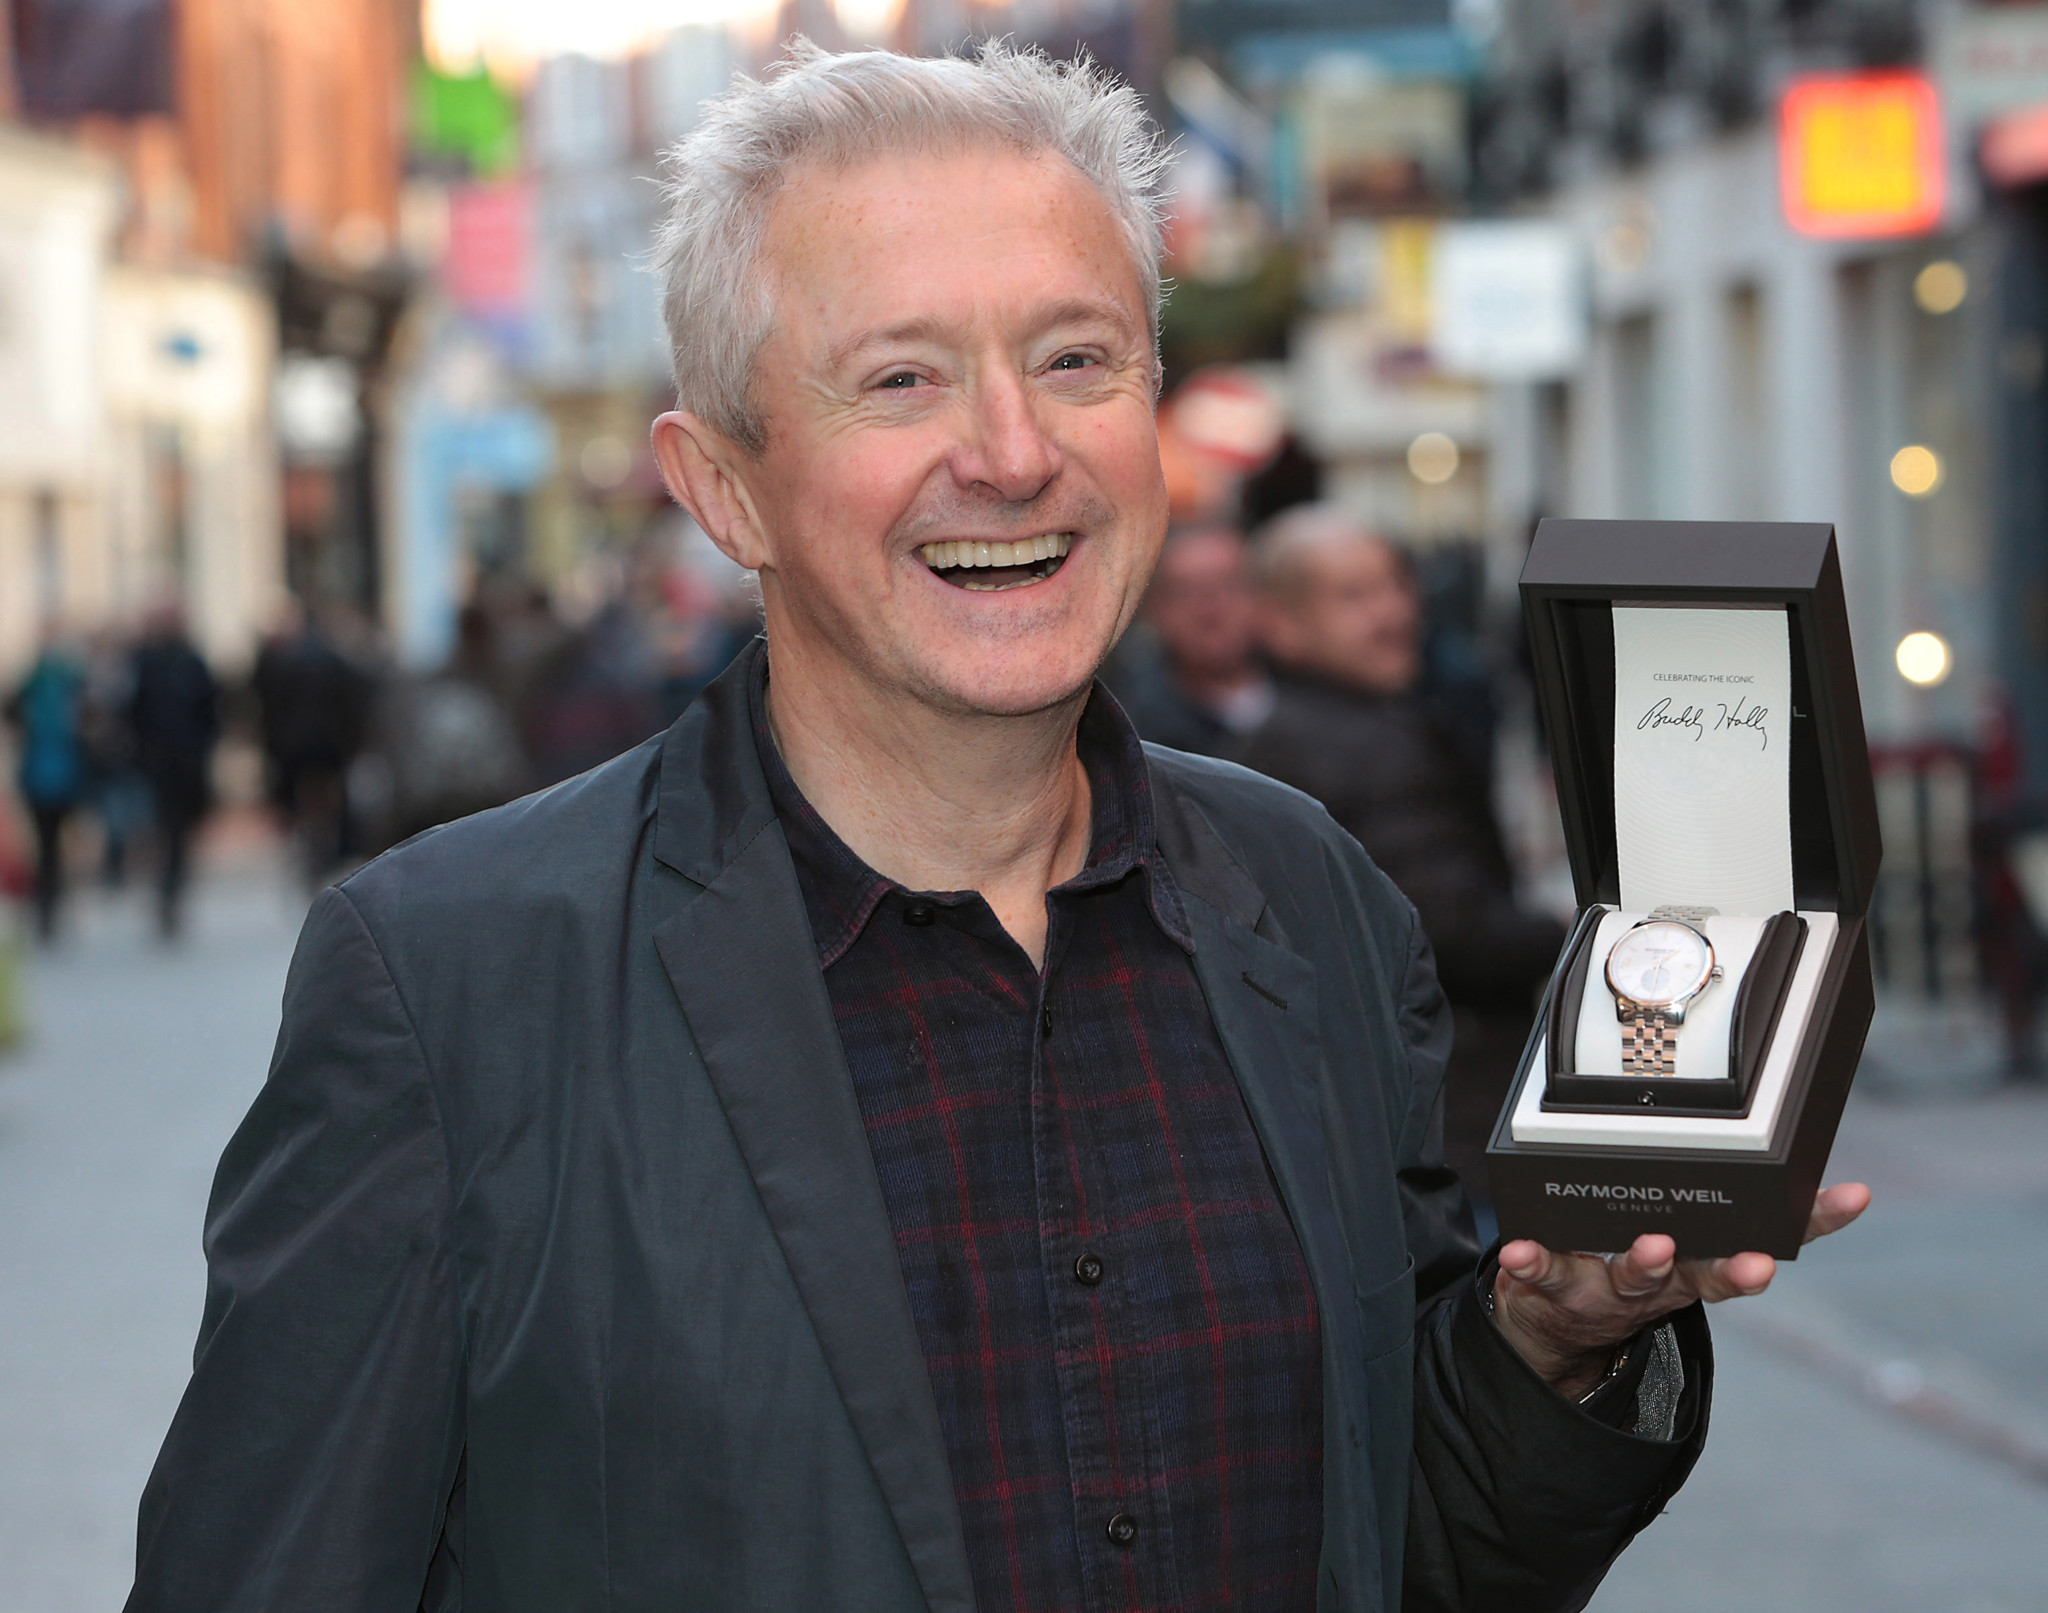 Louis Walsh pictured at Weirs Grafton Street with his Raymond Weil  Limited Edition maestro.